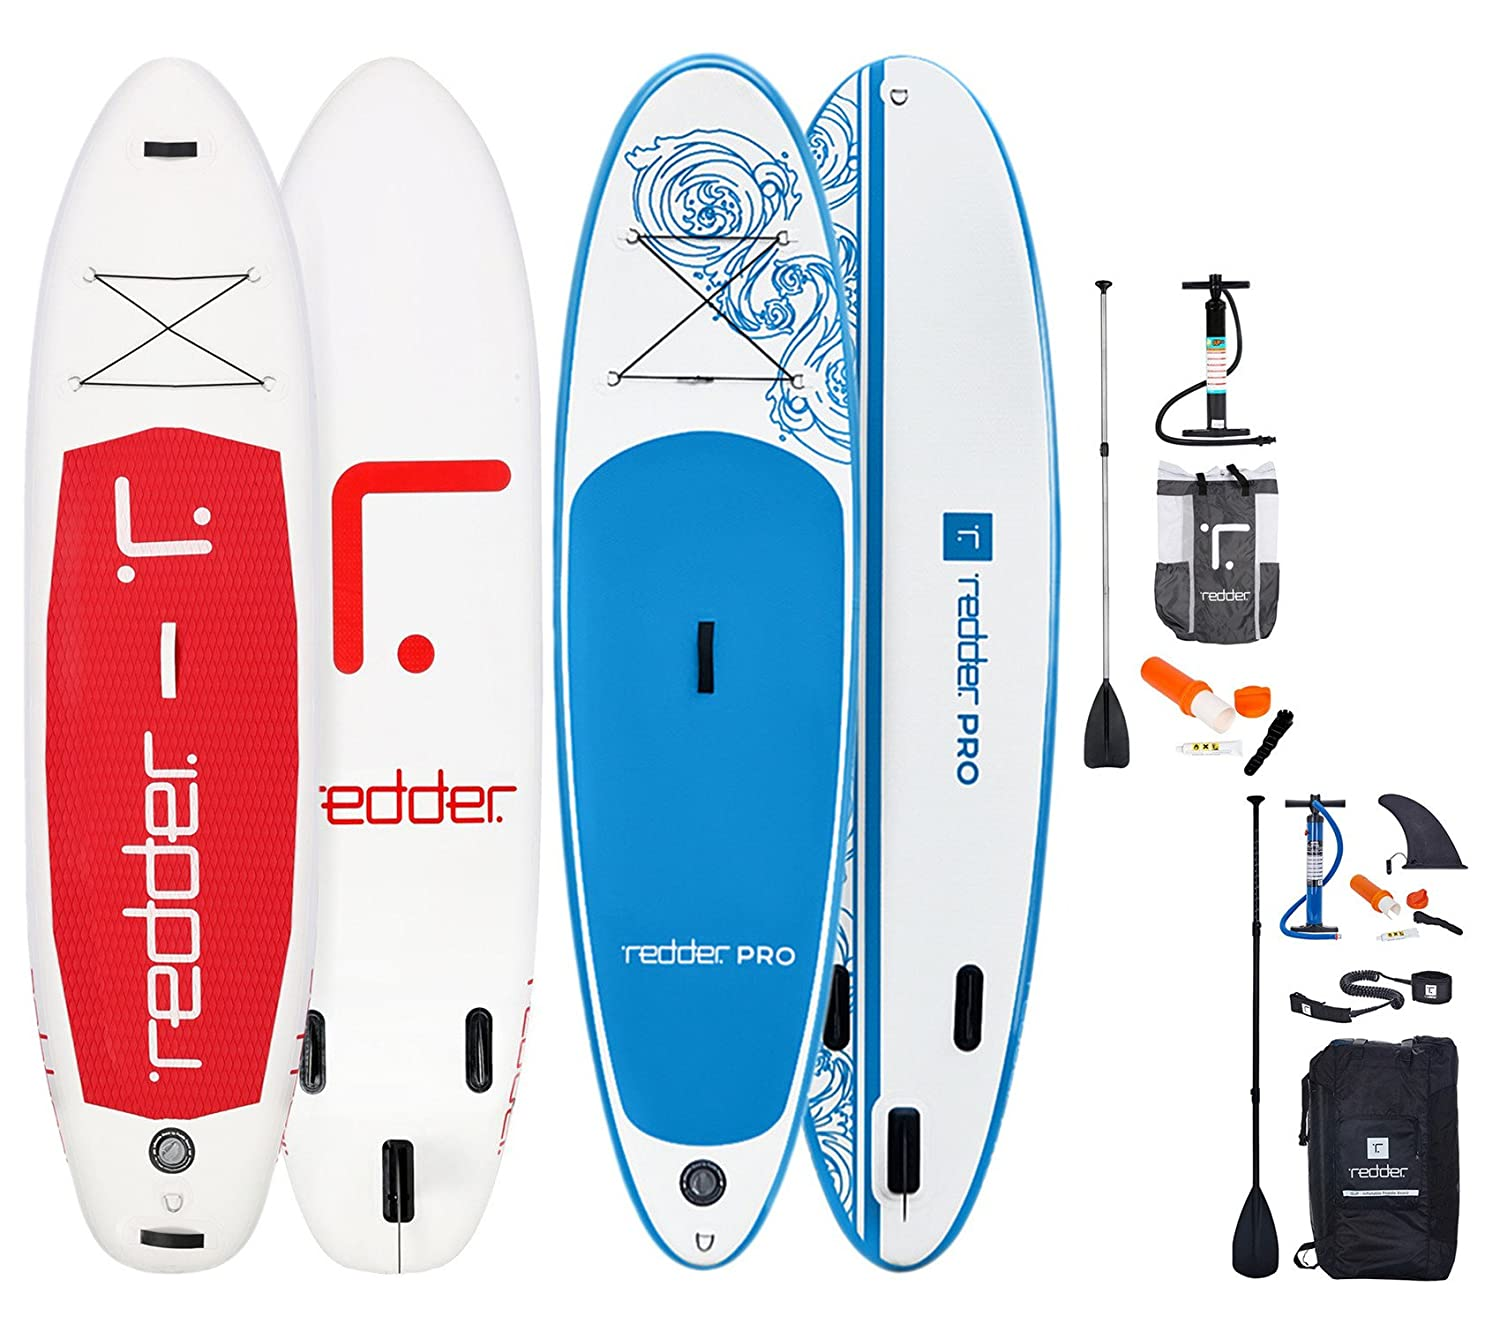 REDDER Pack De 2 Tablas Paddle Surf Hinchables 10 VORTEX Pro + CLASSIC All Round Tabla Stand Up Paddle - KIT con Bravo SUP3 Inflador, Carbono y Fibra de ...